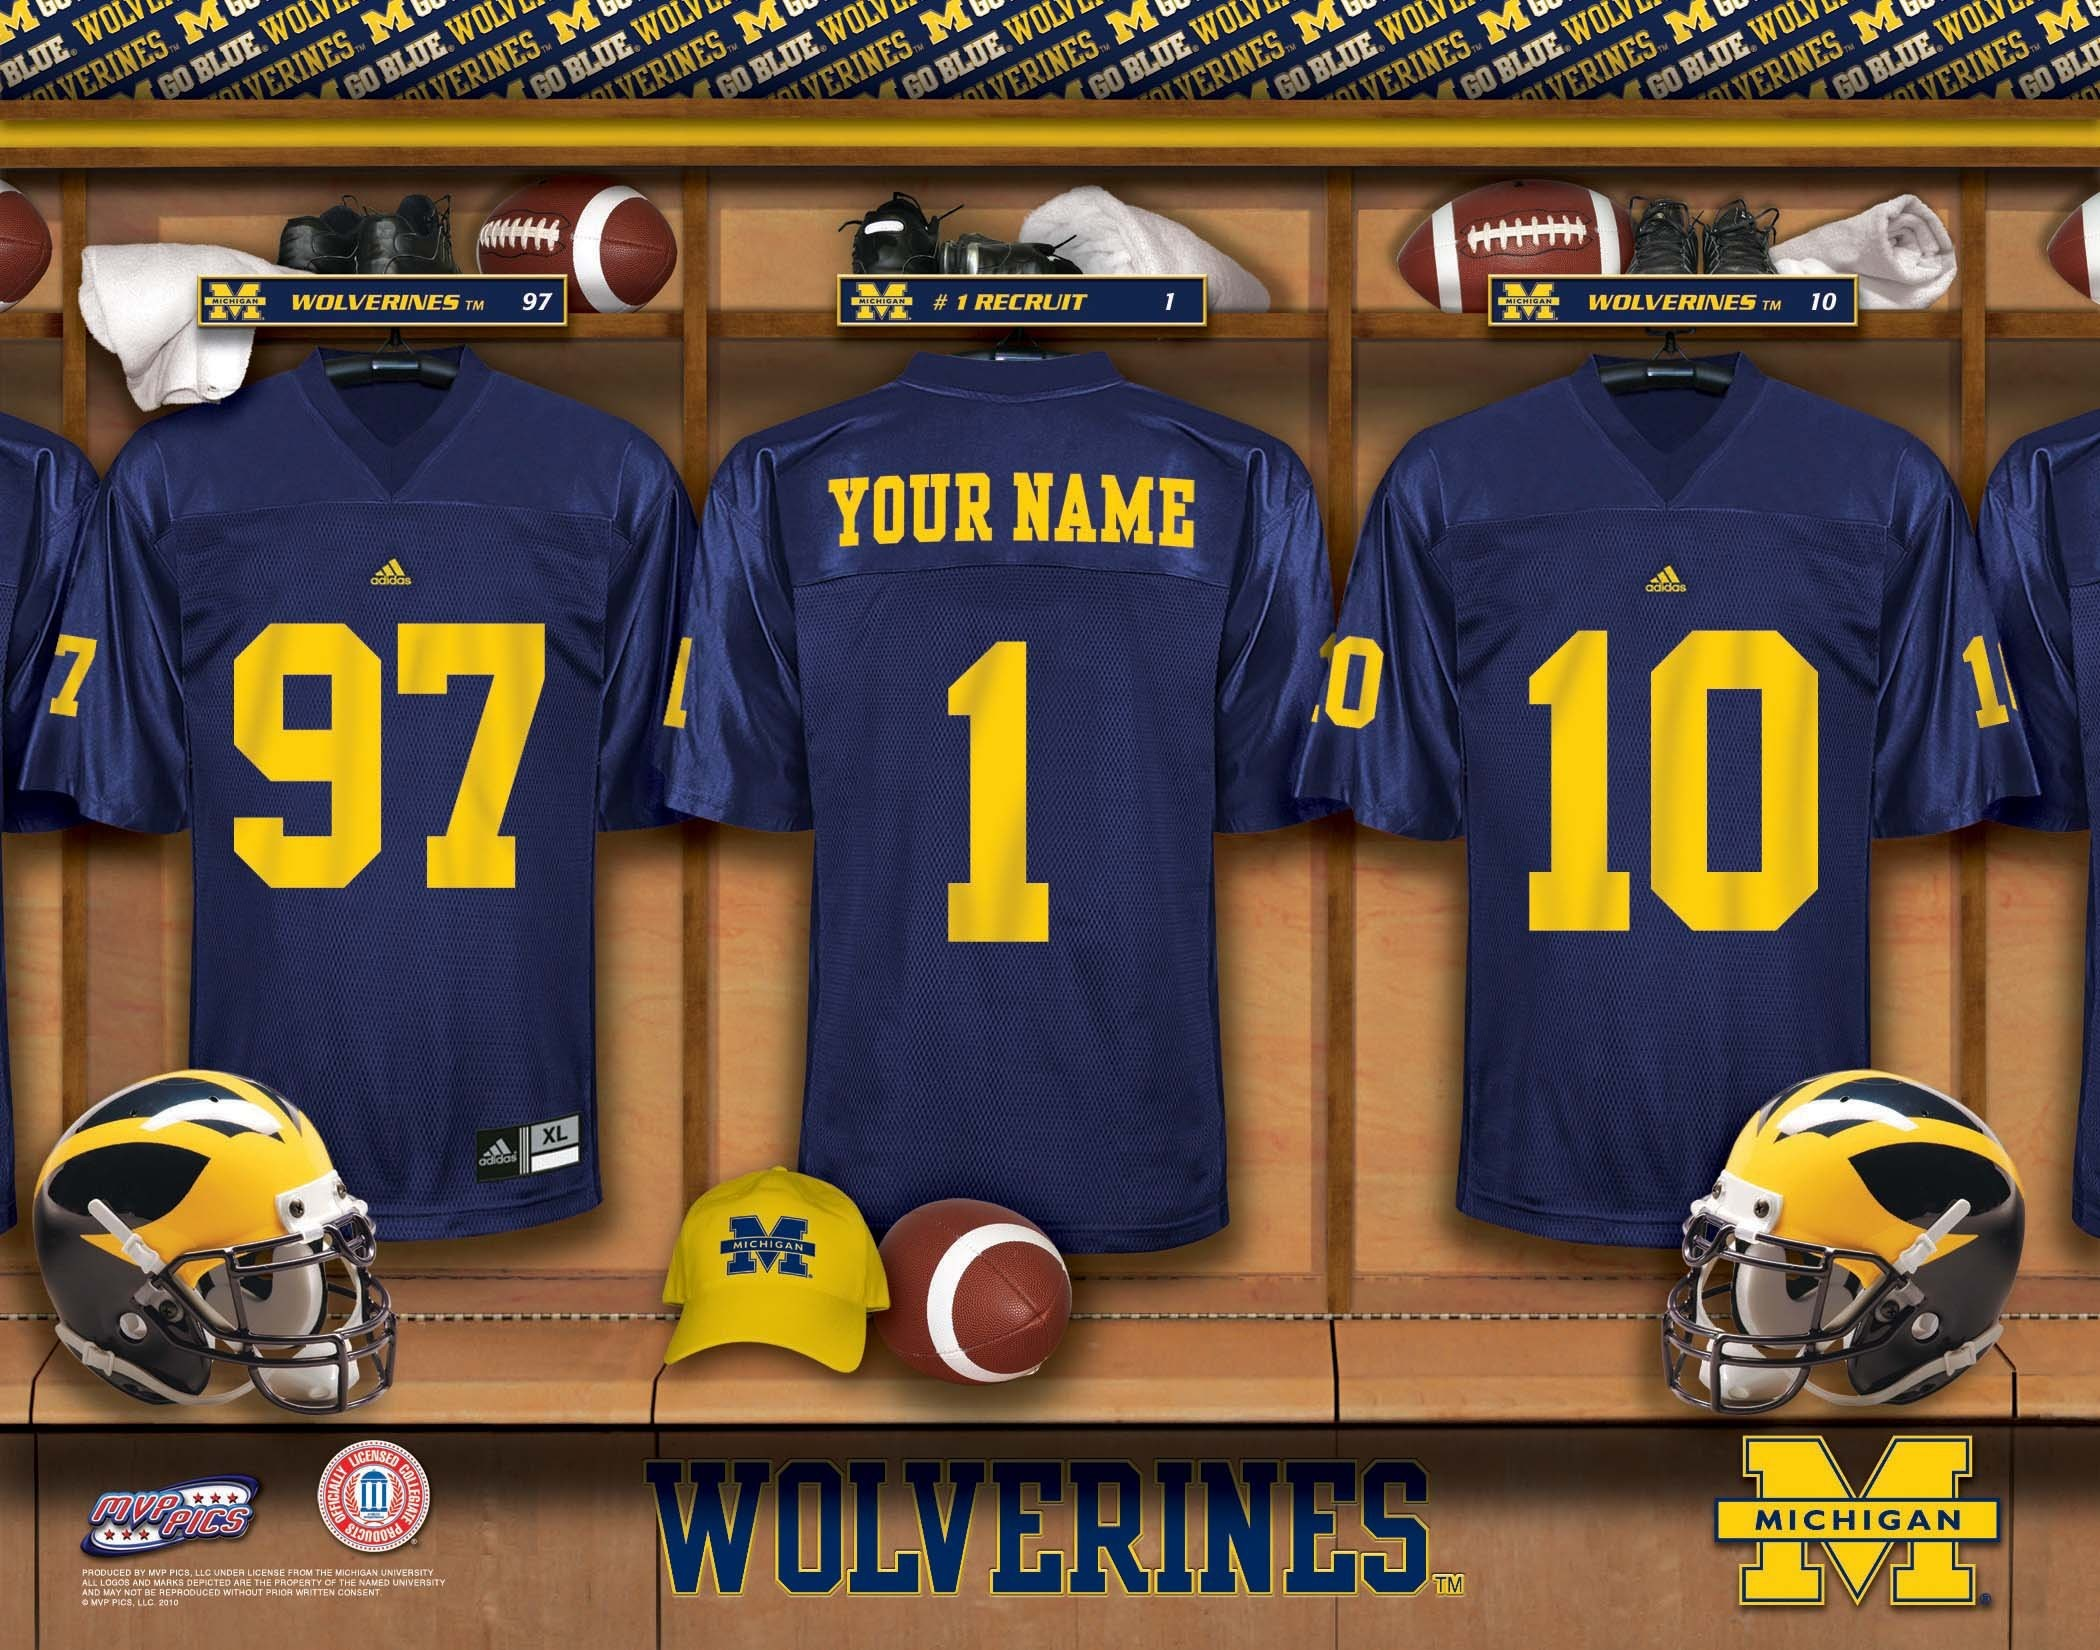 2100x1650 Michigan Wolverines Football Wallpapers Group